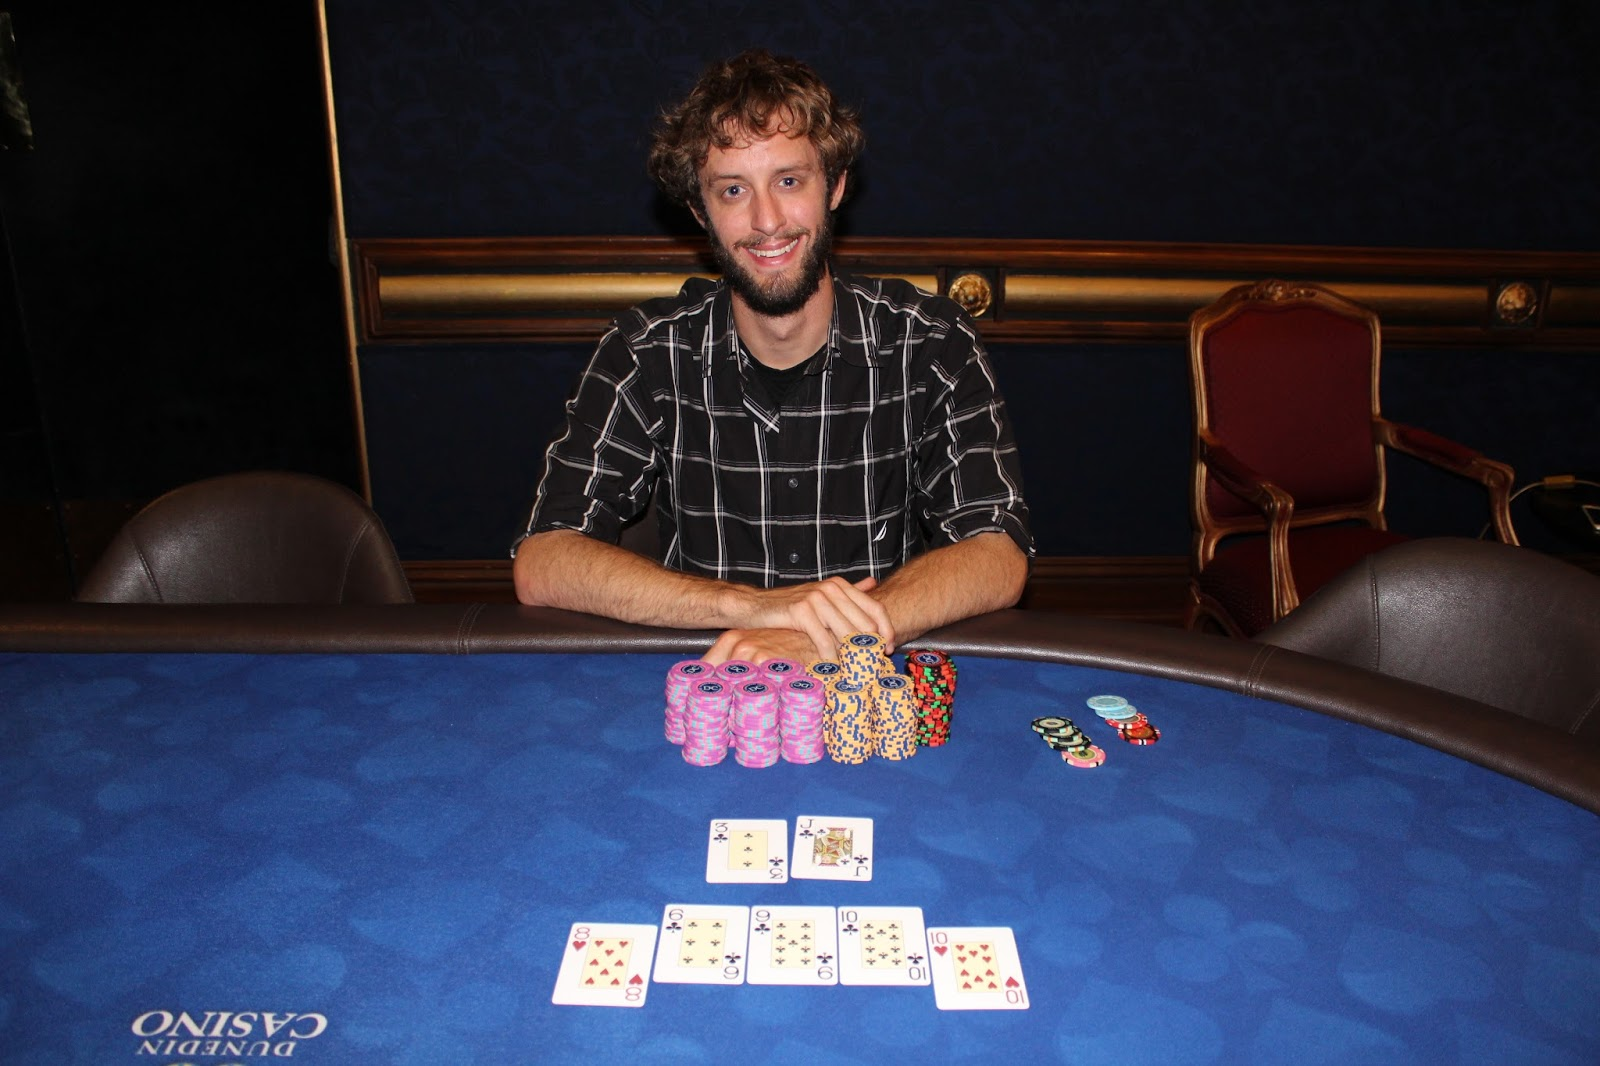 Texas Hold'em Poker Tournament Winner